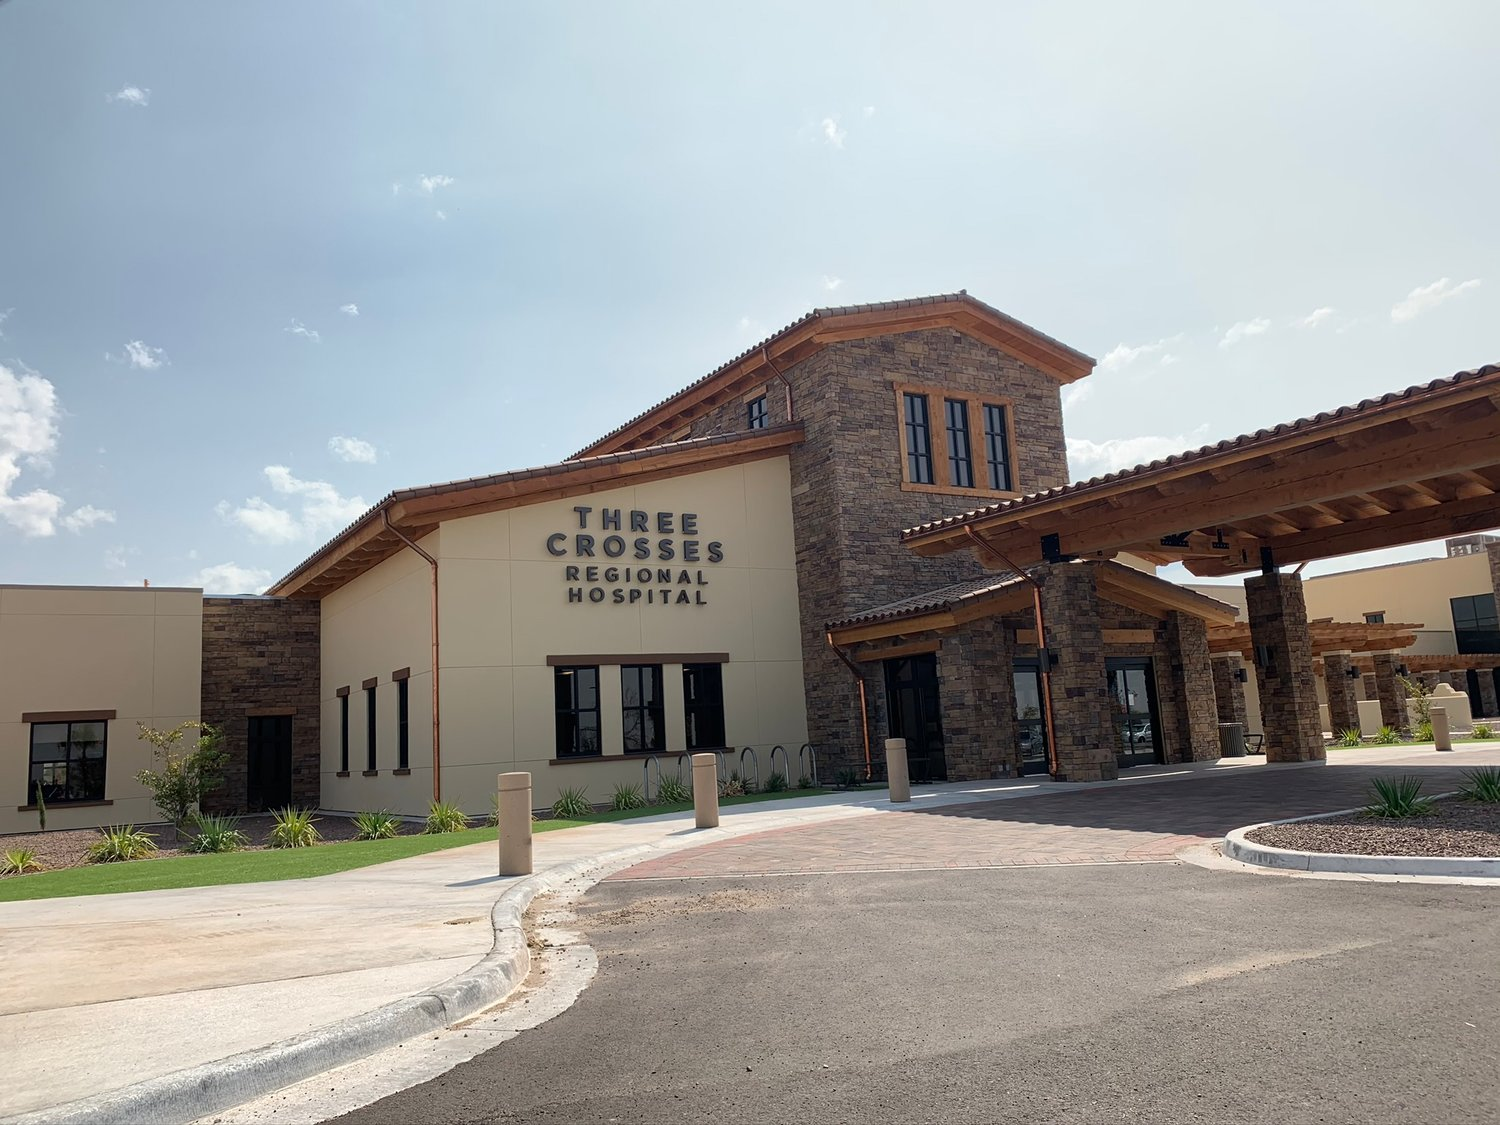 Las Cruces's most recent acute care hospital Three Crosses Regional, is set to begin taking patients on Oct. 8.